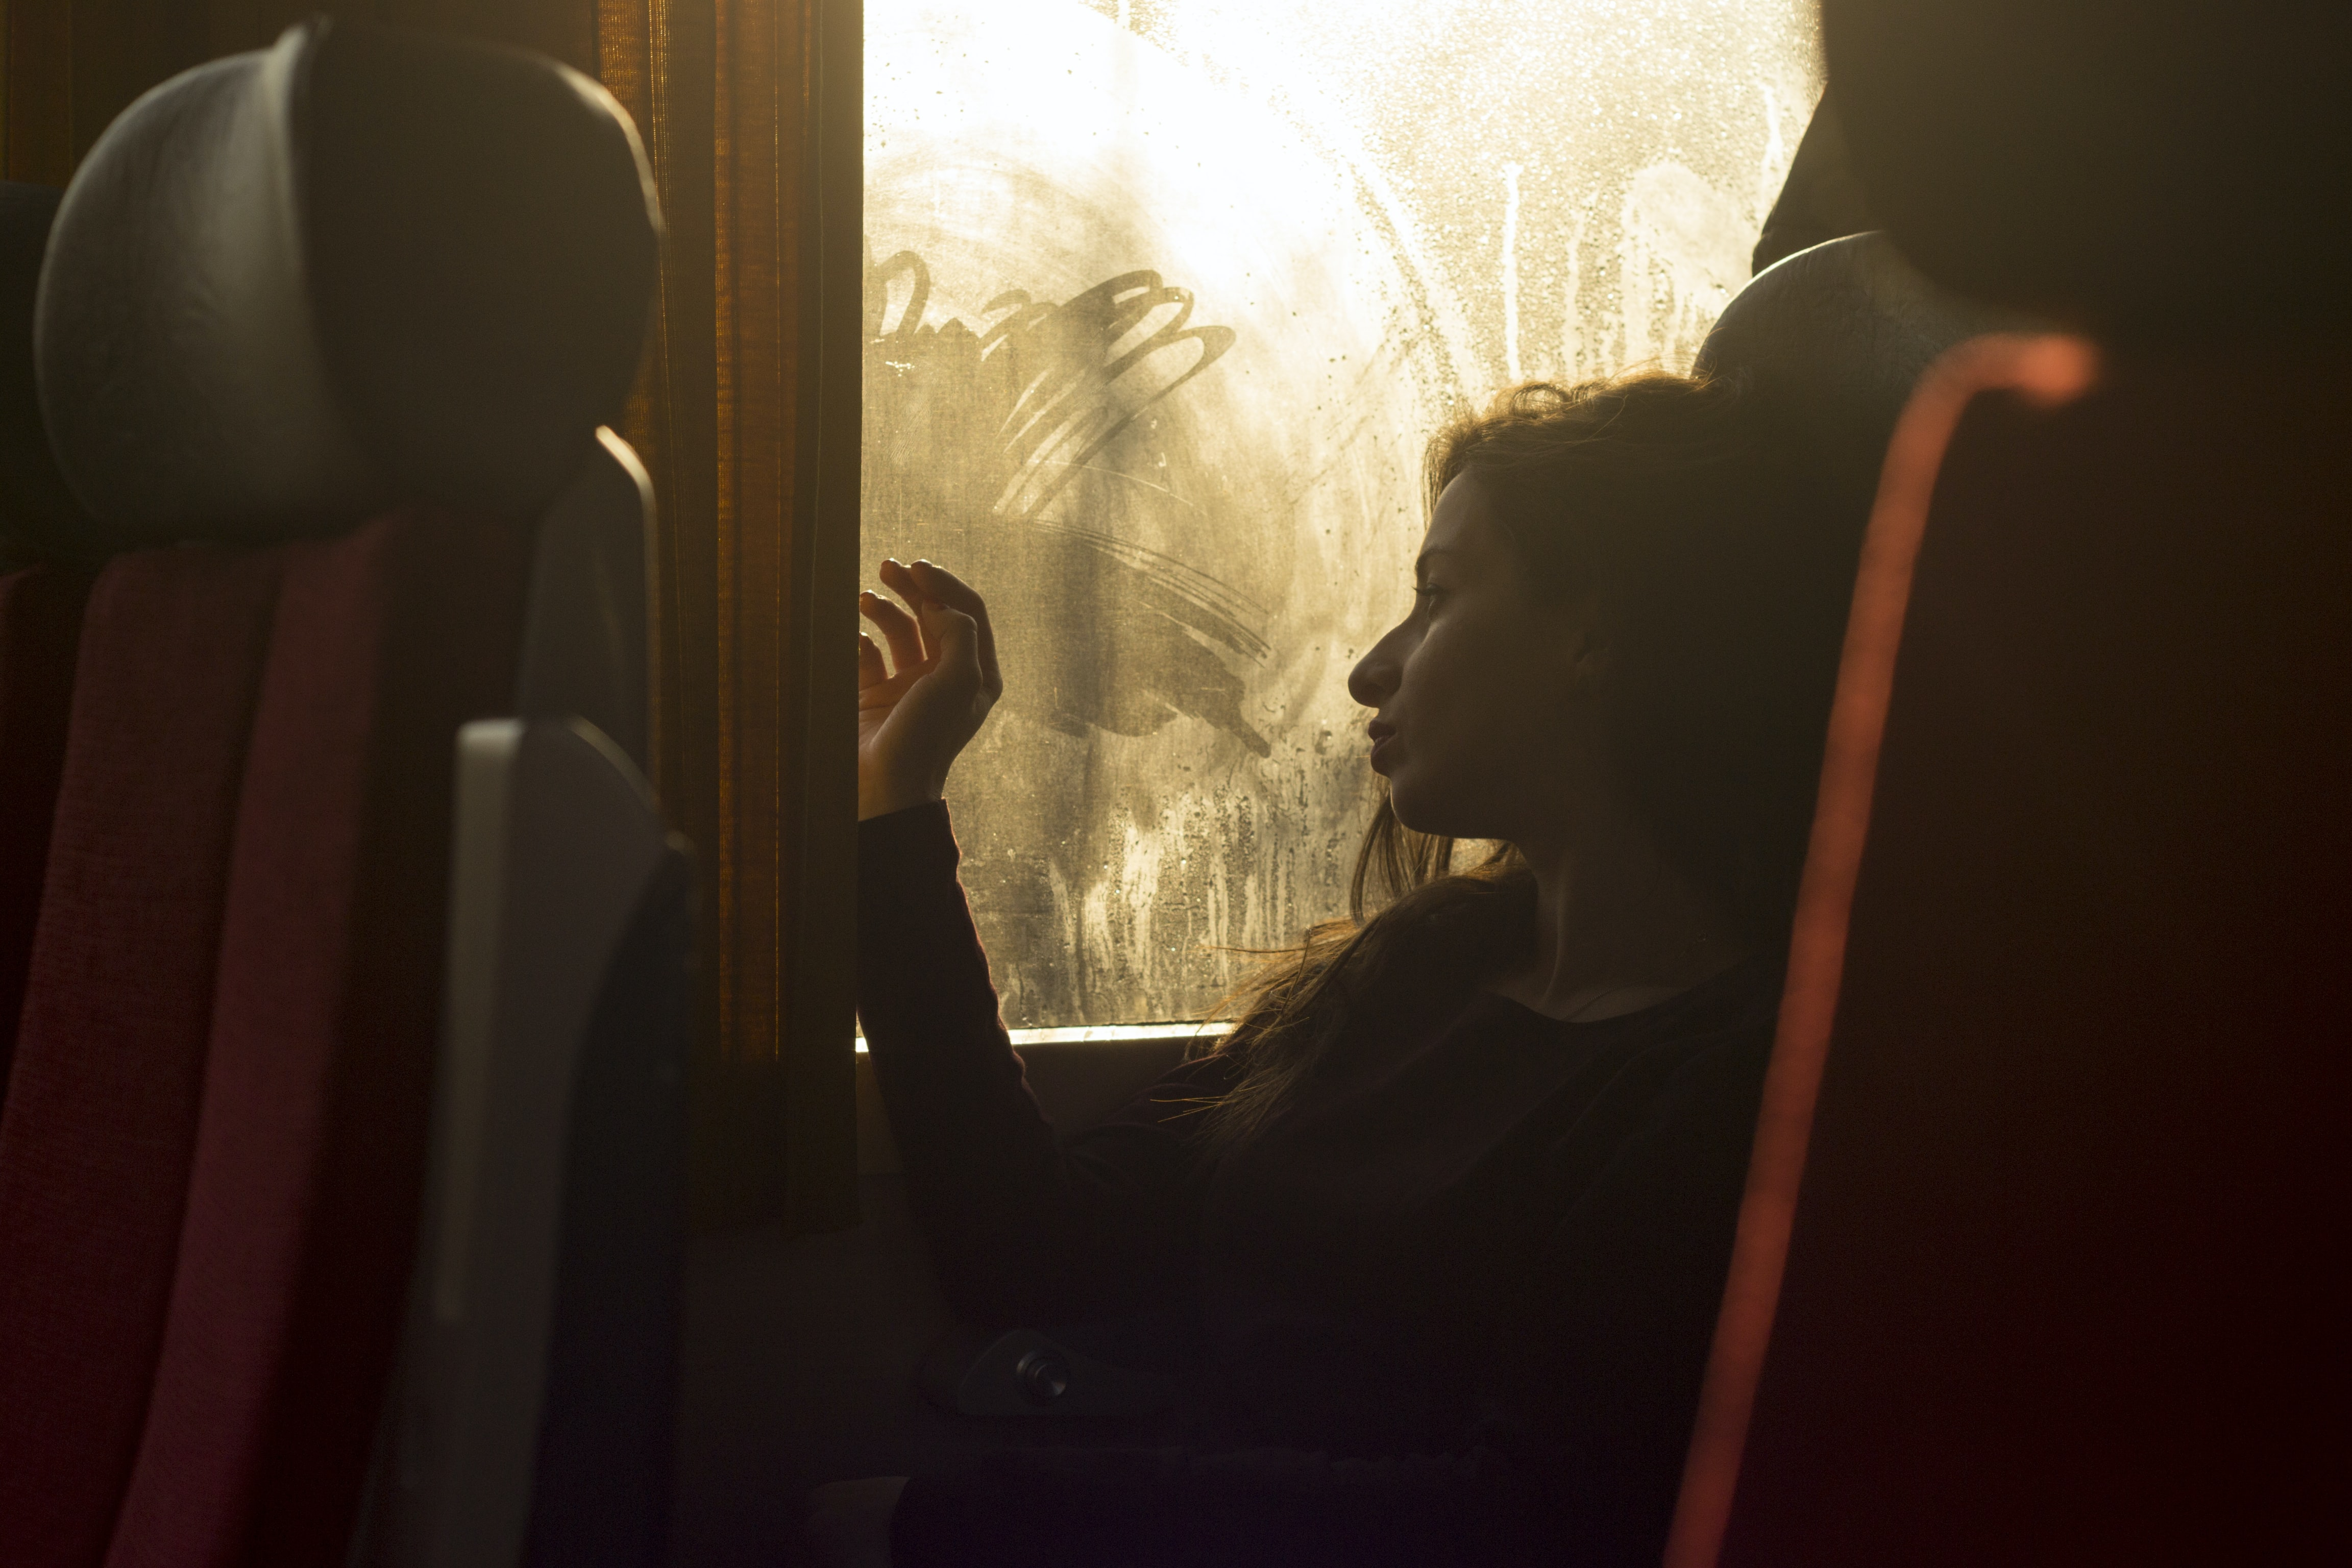 A woman on a bus drawing with her fingers on steamed-up windows